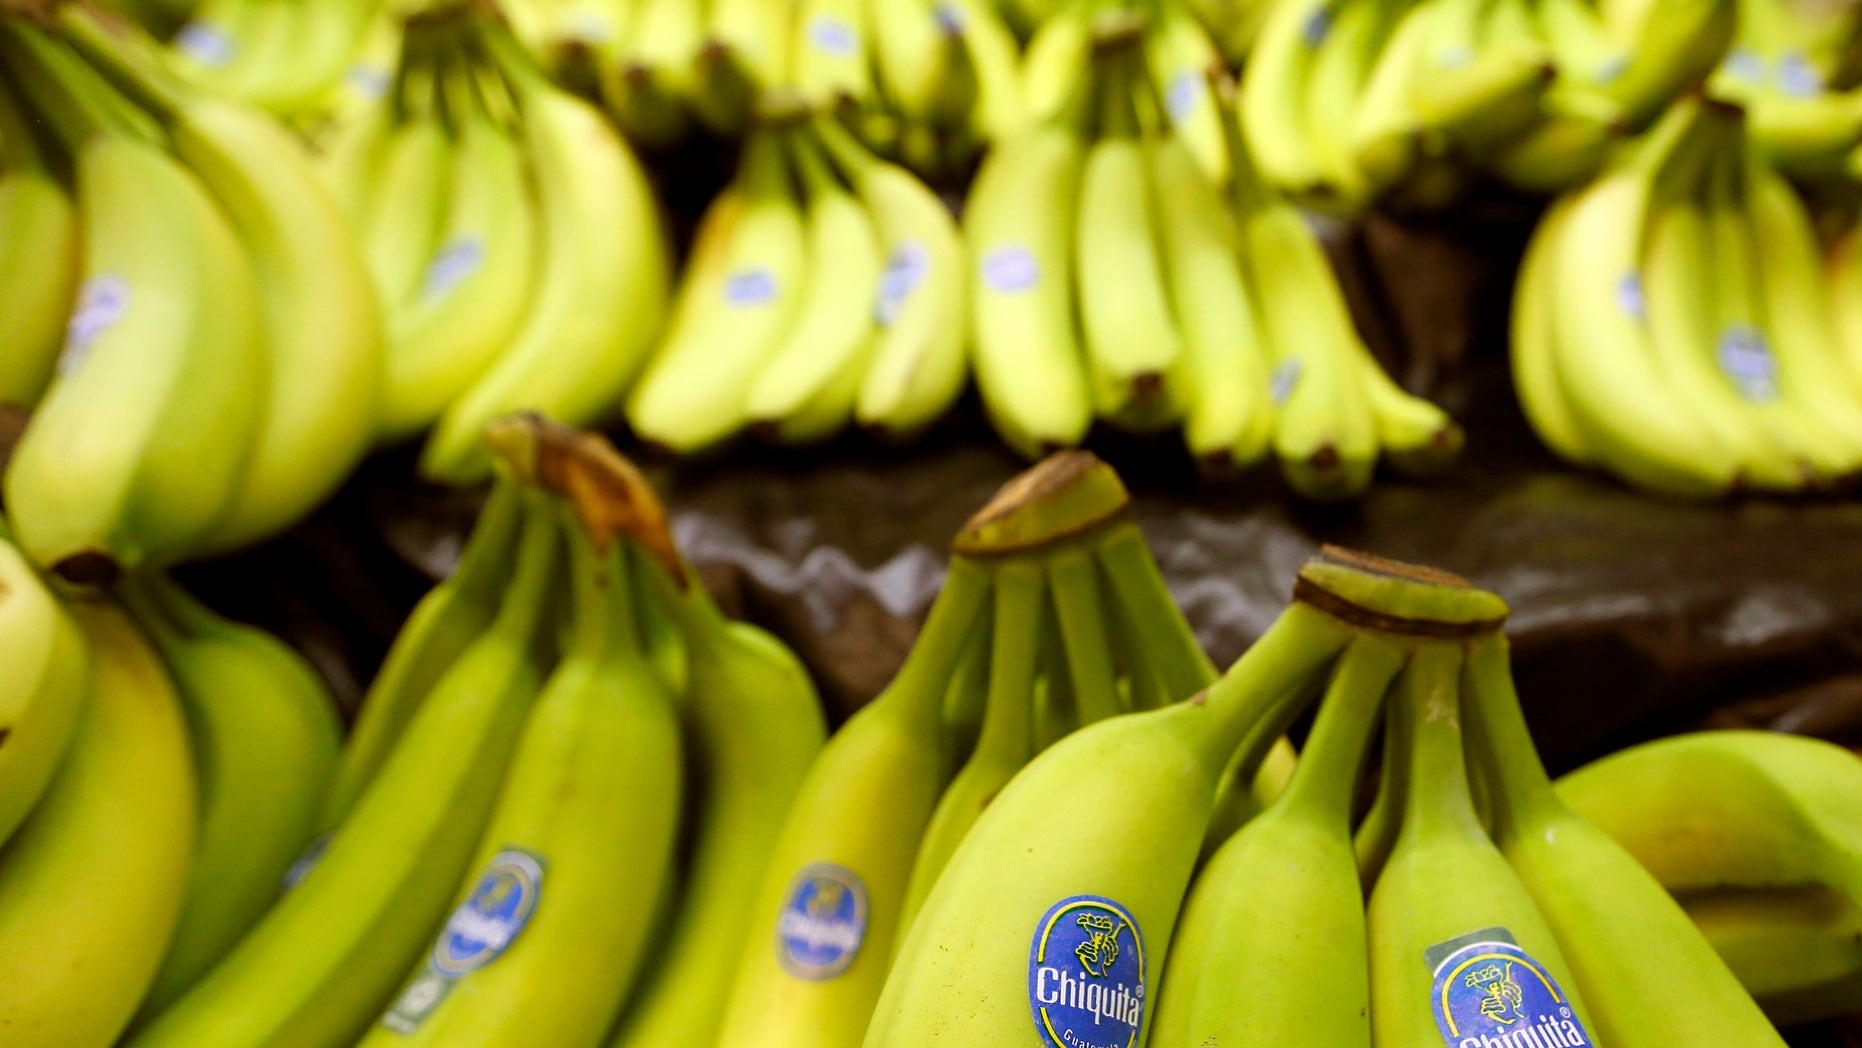 FILE - This Sept. 10, 2014 file photo shows bunches of Chiquita brand bananas for sale at a grocery store in Zelienople, Pa. Chiquita Brands International Inc. on Monday, Oct. 27, 2014 said it has agreed to sell itself to two Brazilian companies for approximately $681 million, just days after the fresh produce company's shareholders rejected plans to merge with Irish fruit importer Fyffes. (AP Photo/Keith Srakocic, File)